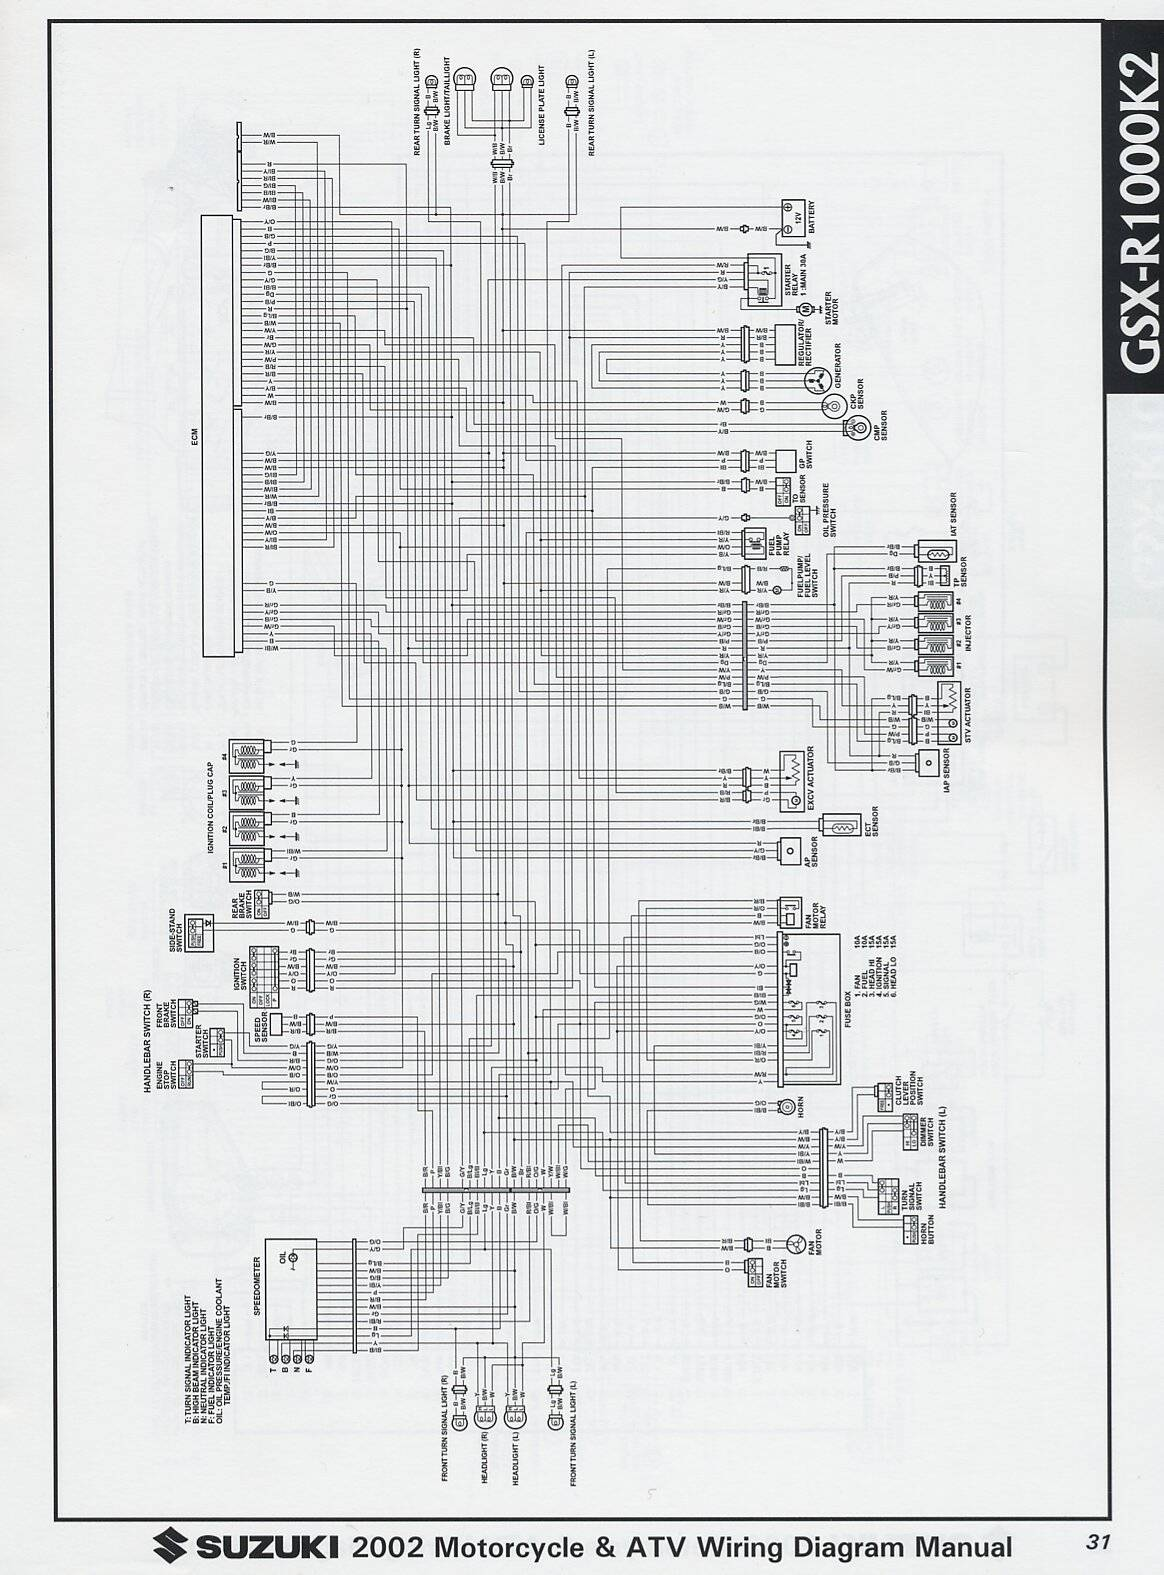 Wiring Diagram For 2002 Suzuki Gsxr 600 The Wiring Diagram 1996 CBR 900Rr Wire  Diagram 2002 Gsxr 600 Wiring Diagram